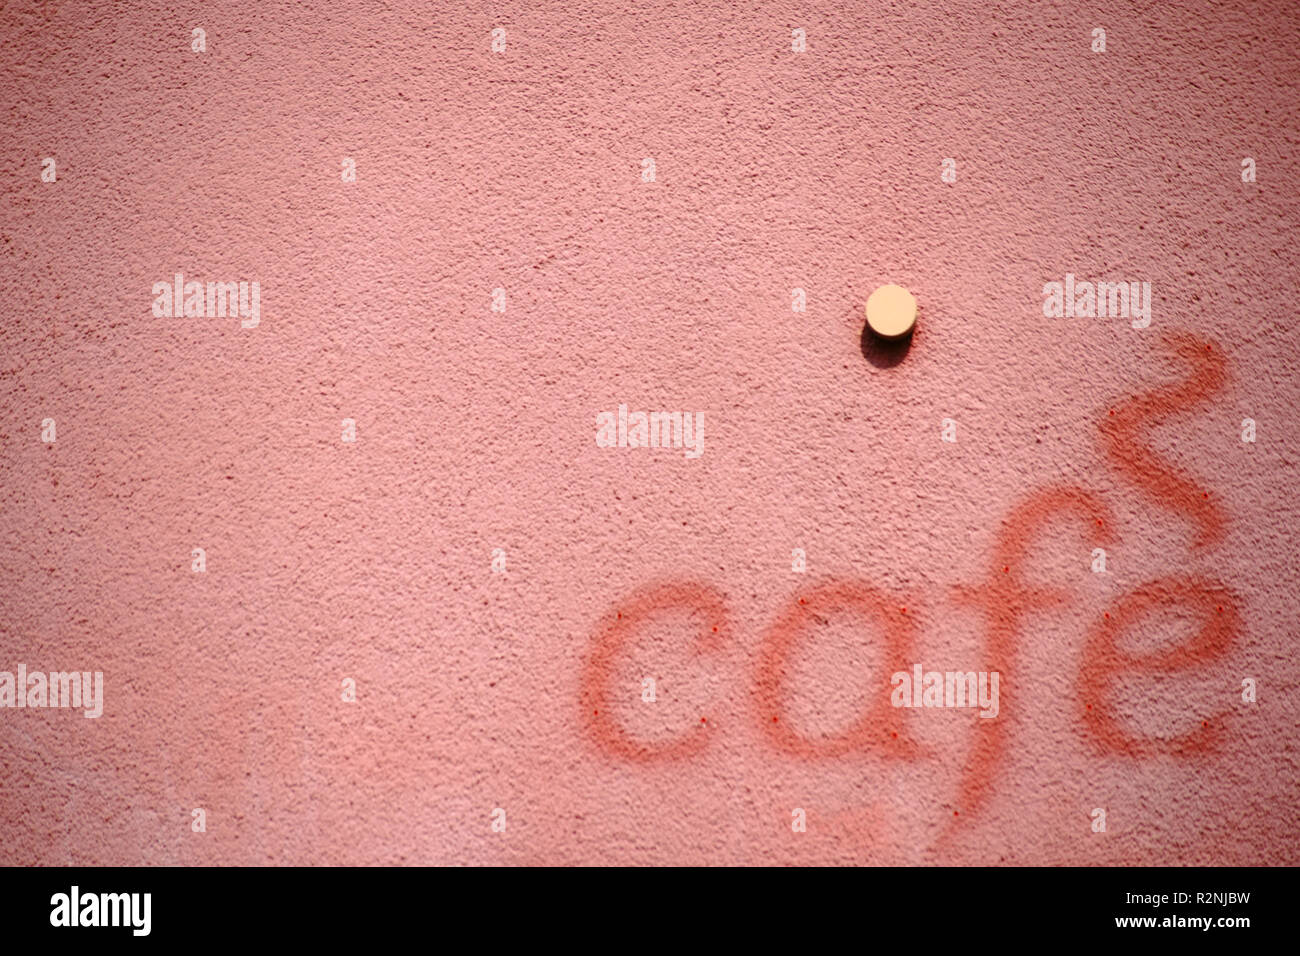 The lettering 'Café' on the facade of a building in color contrast to the brighter facade, Stock Photo